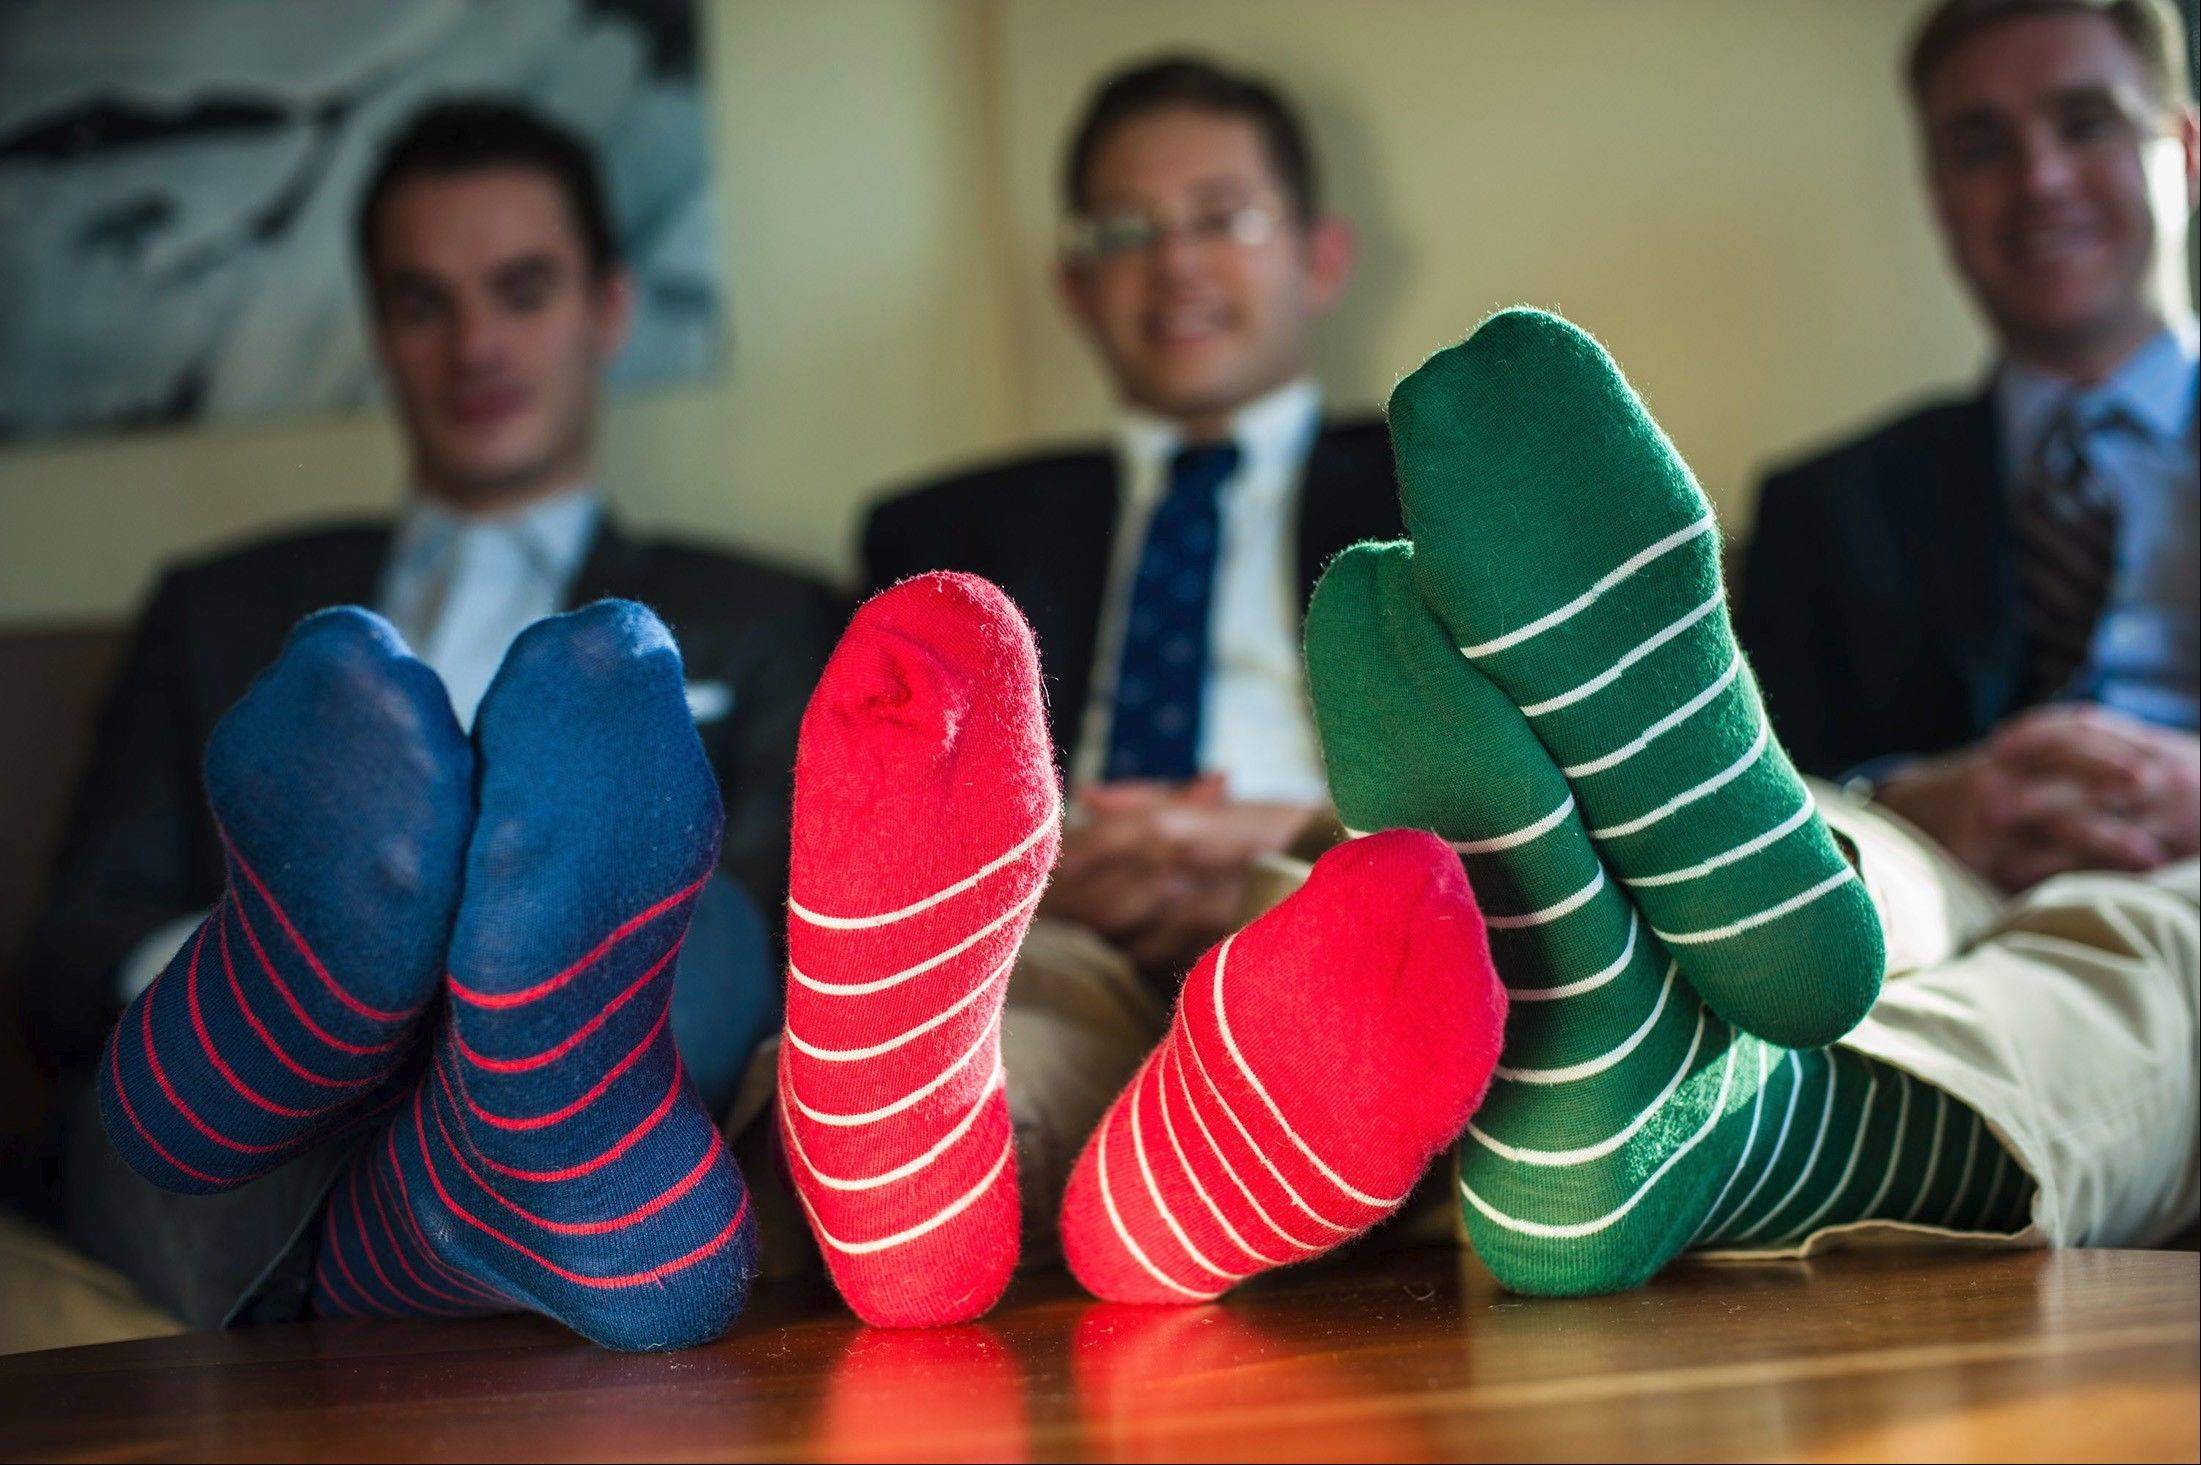 Friends and federal workers, Turner Swicegood, left, Joshua Steinman and Jay Gaul are co-owners of Penance Hall, a startup producing luxury men�s socks.